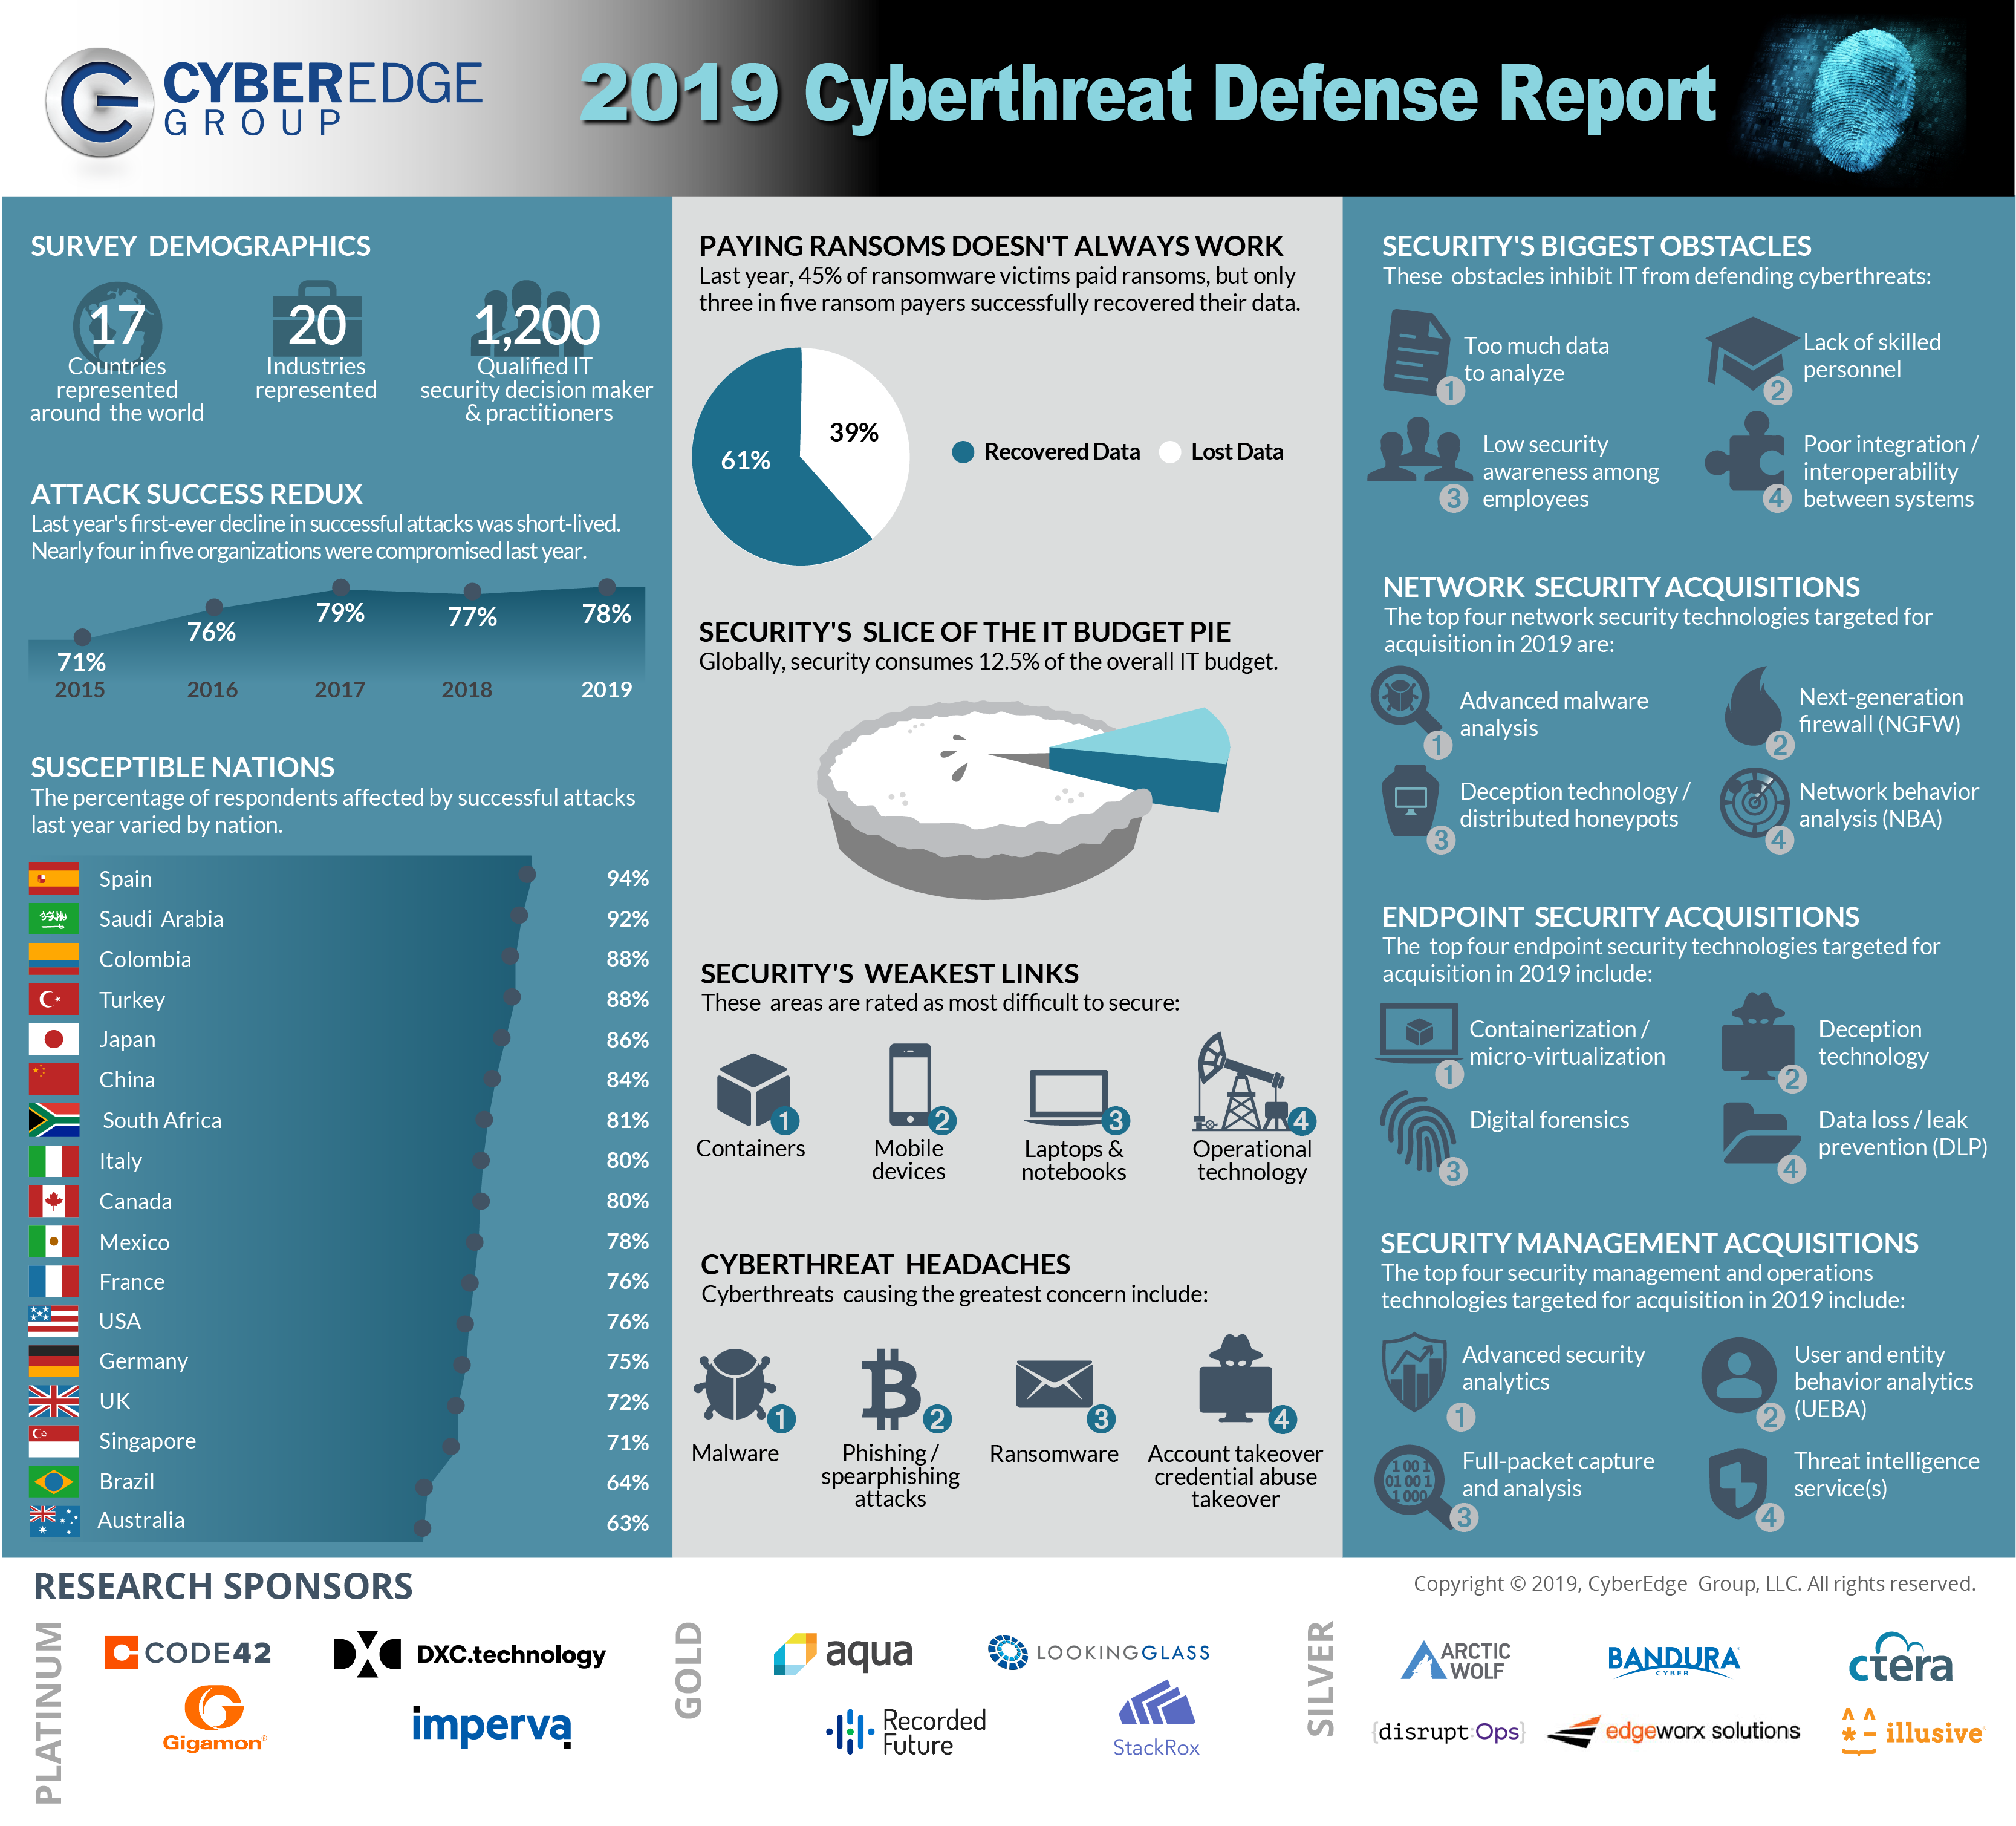 Presentation image for CyberEdge 2019 Cyberthreat Defense Report Infographic